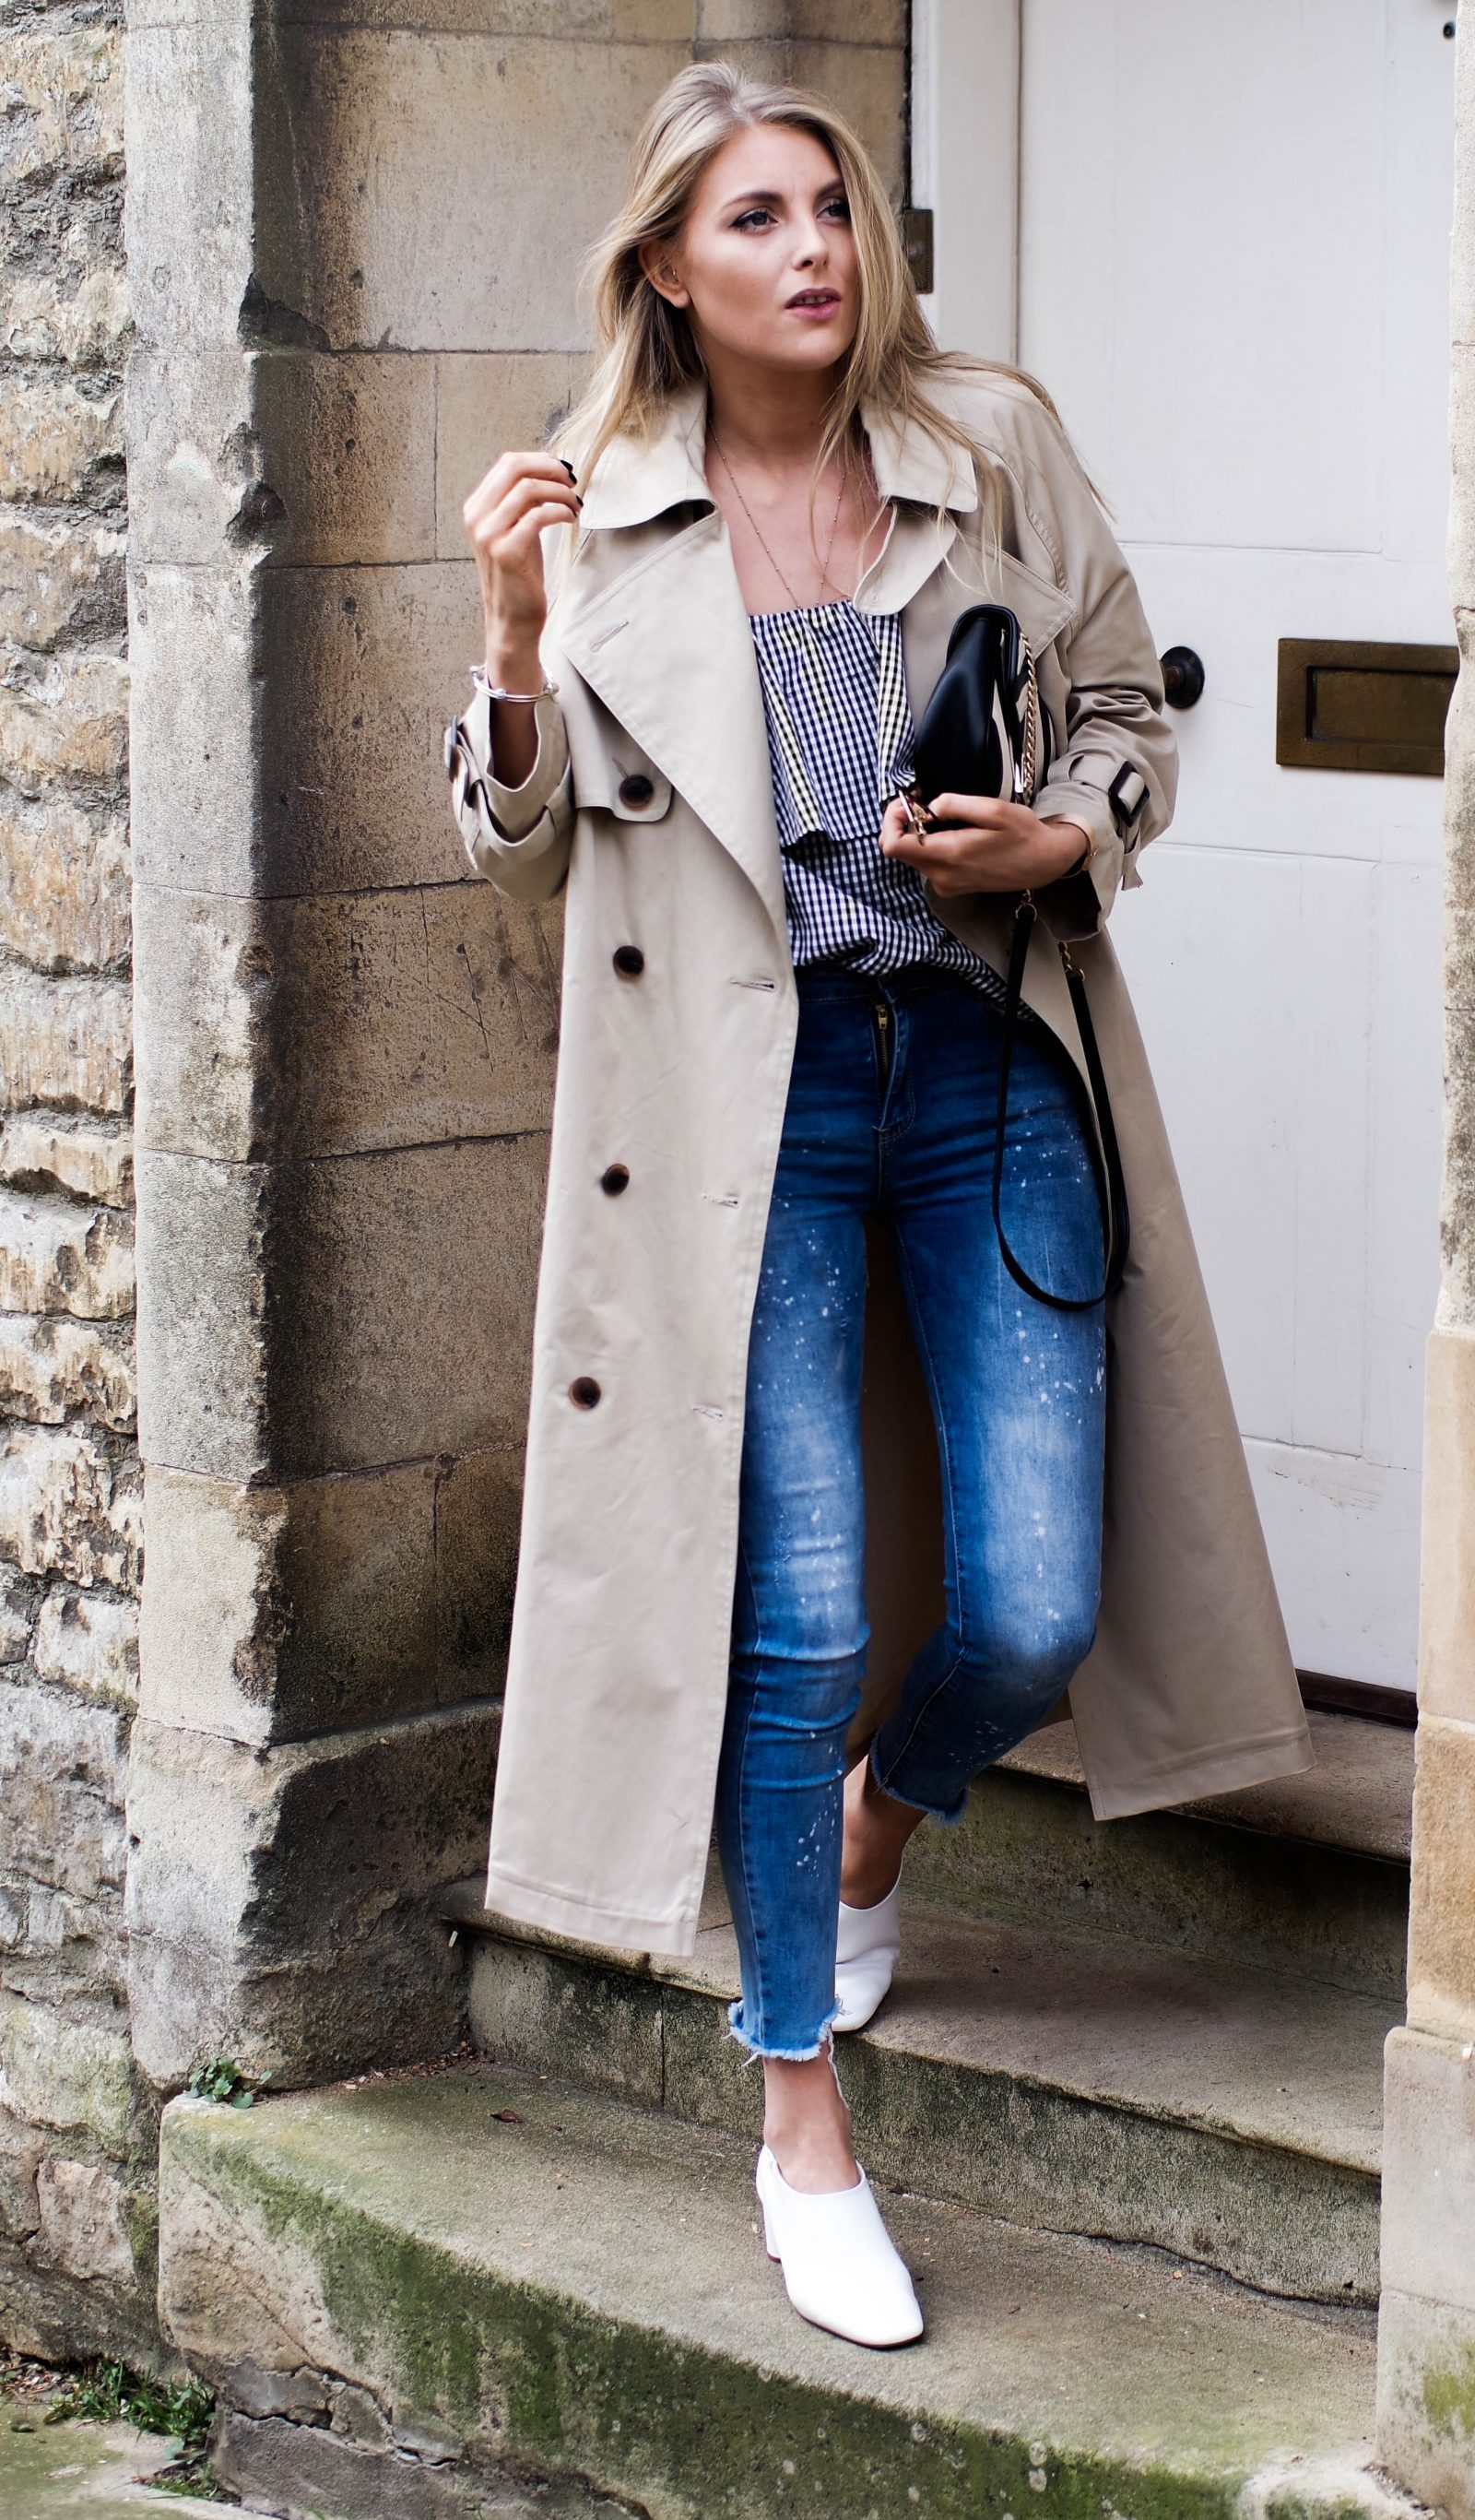 The Spring Wardrobe Staple Every Woman Should Own - Next Trench Coat